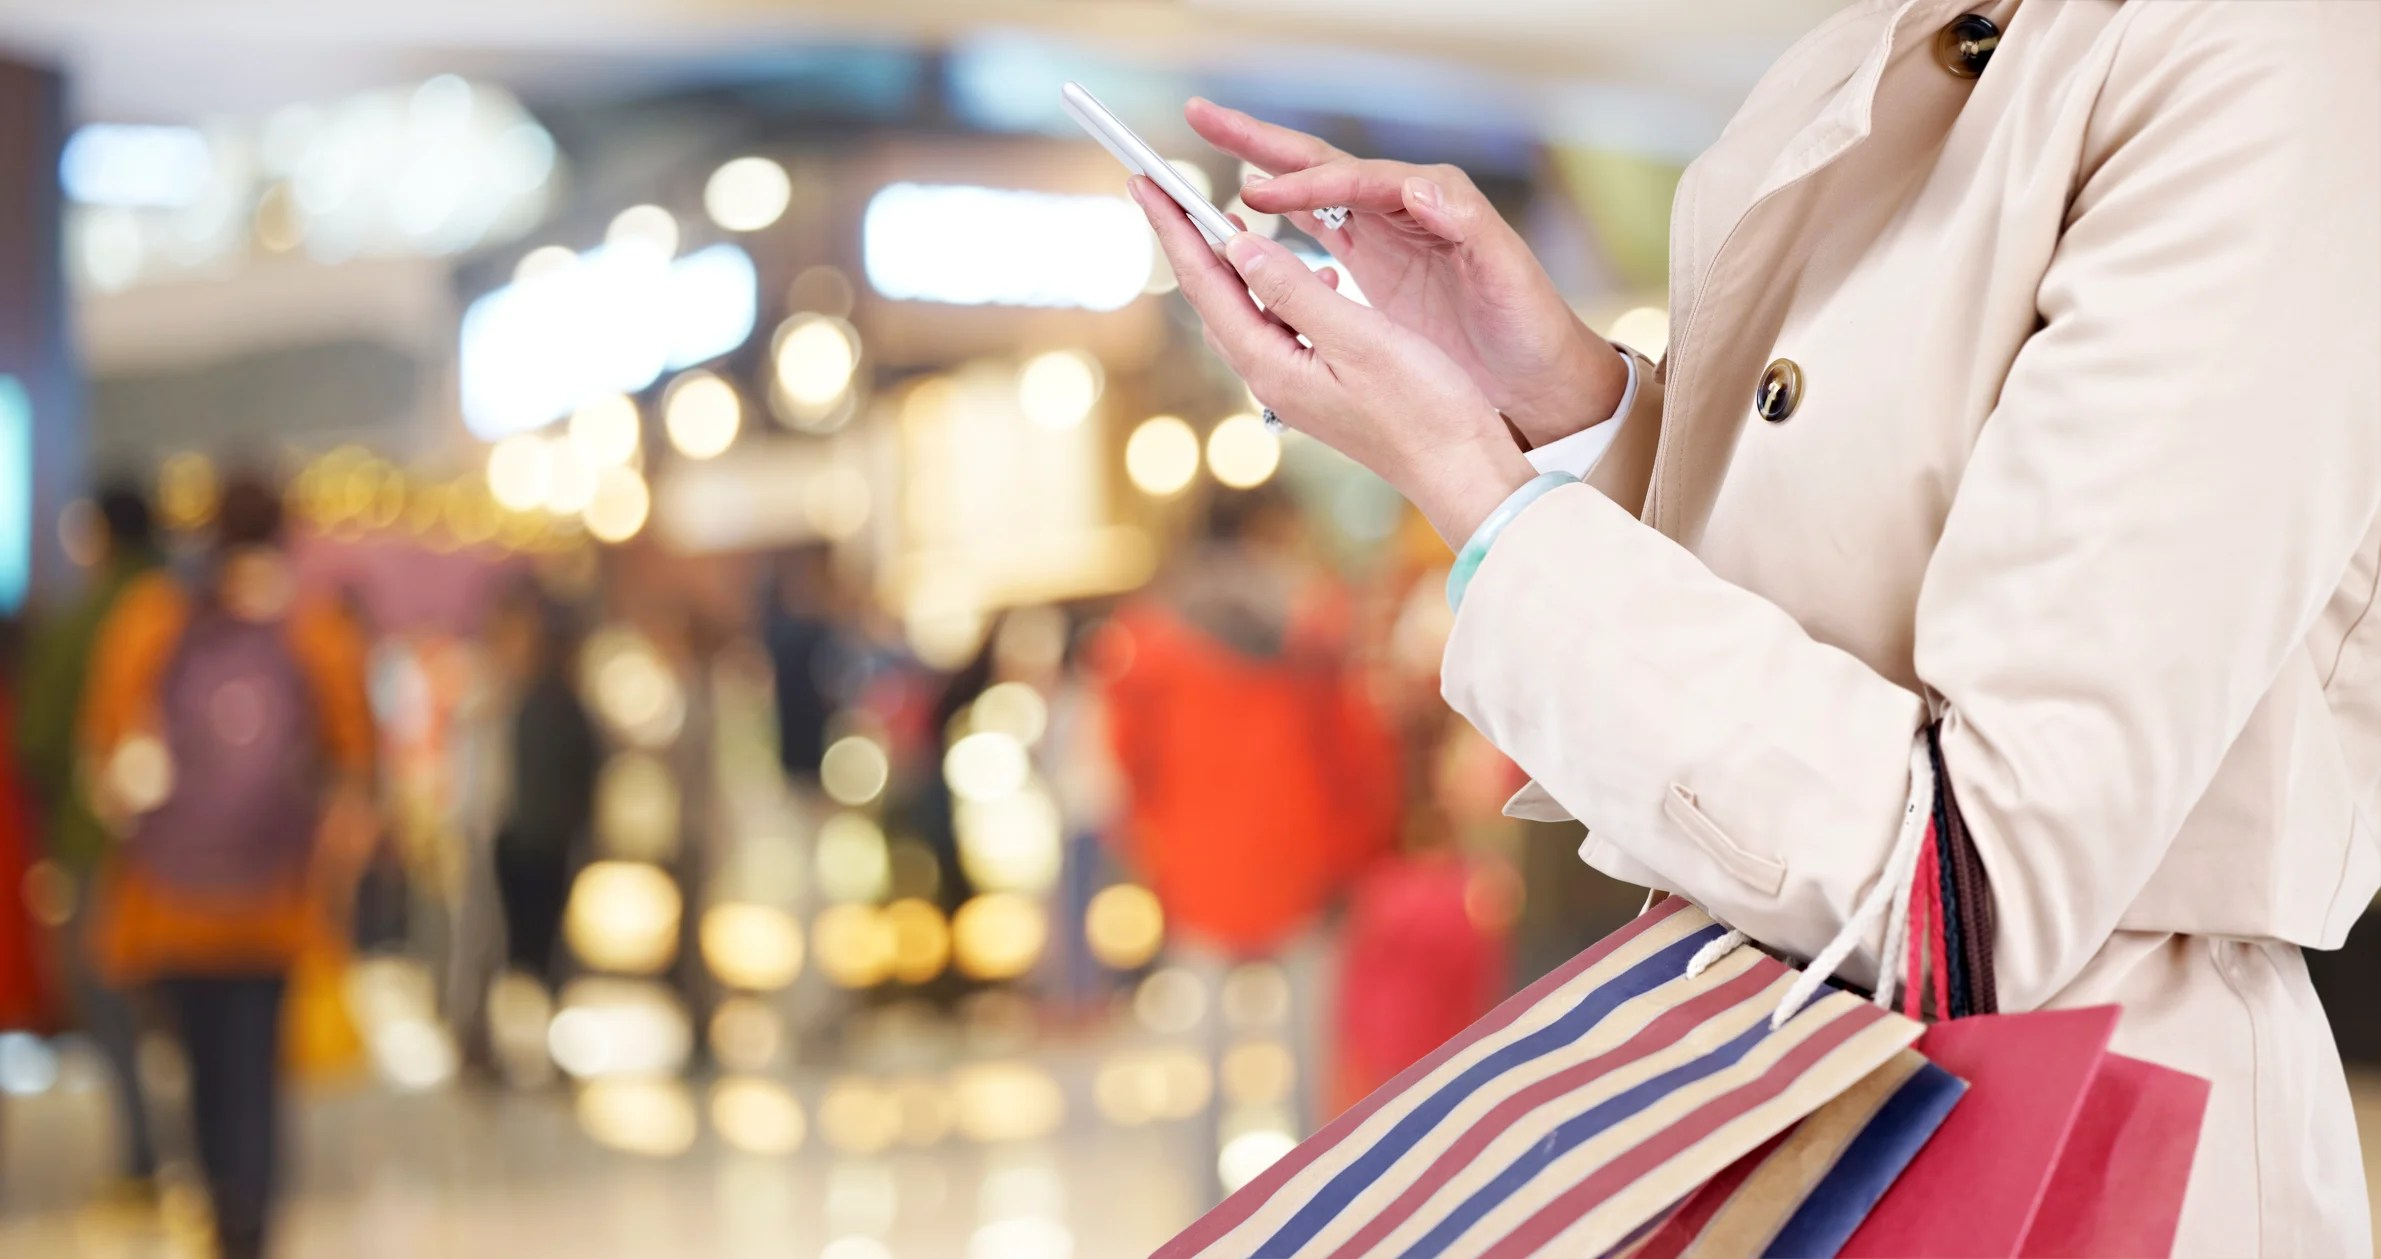 Invest Advisor What Do Consumers Want From A Retail Store? | The Motley Fool